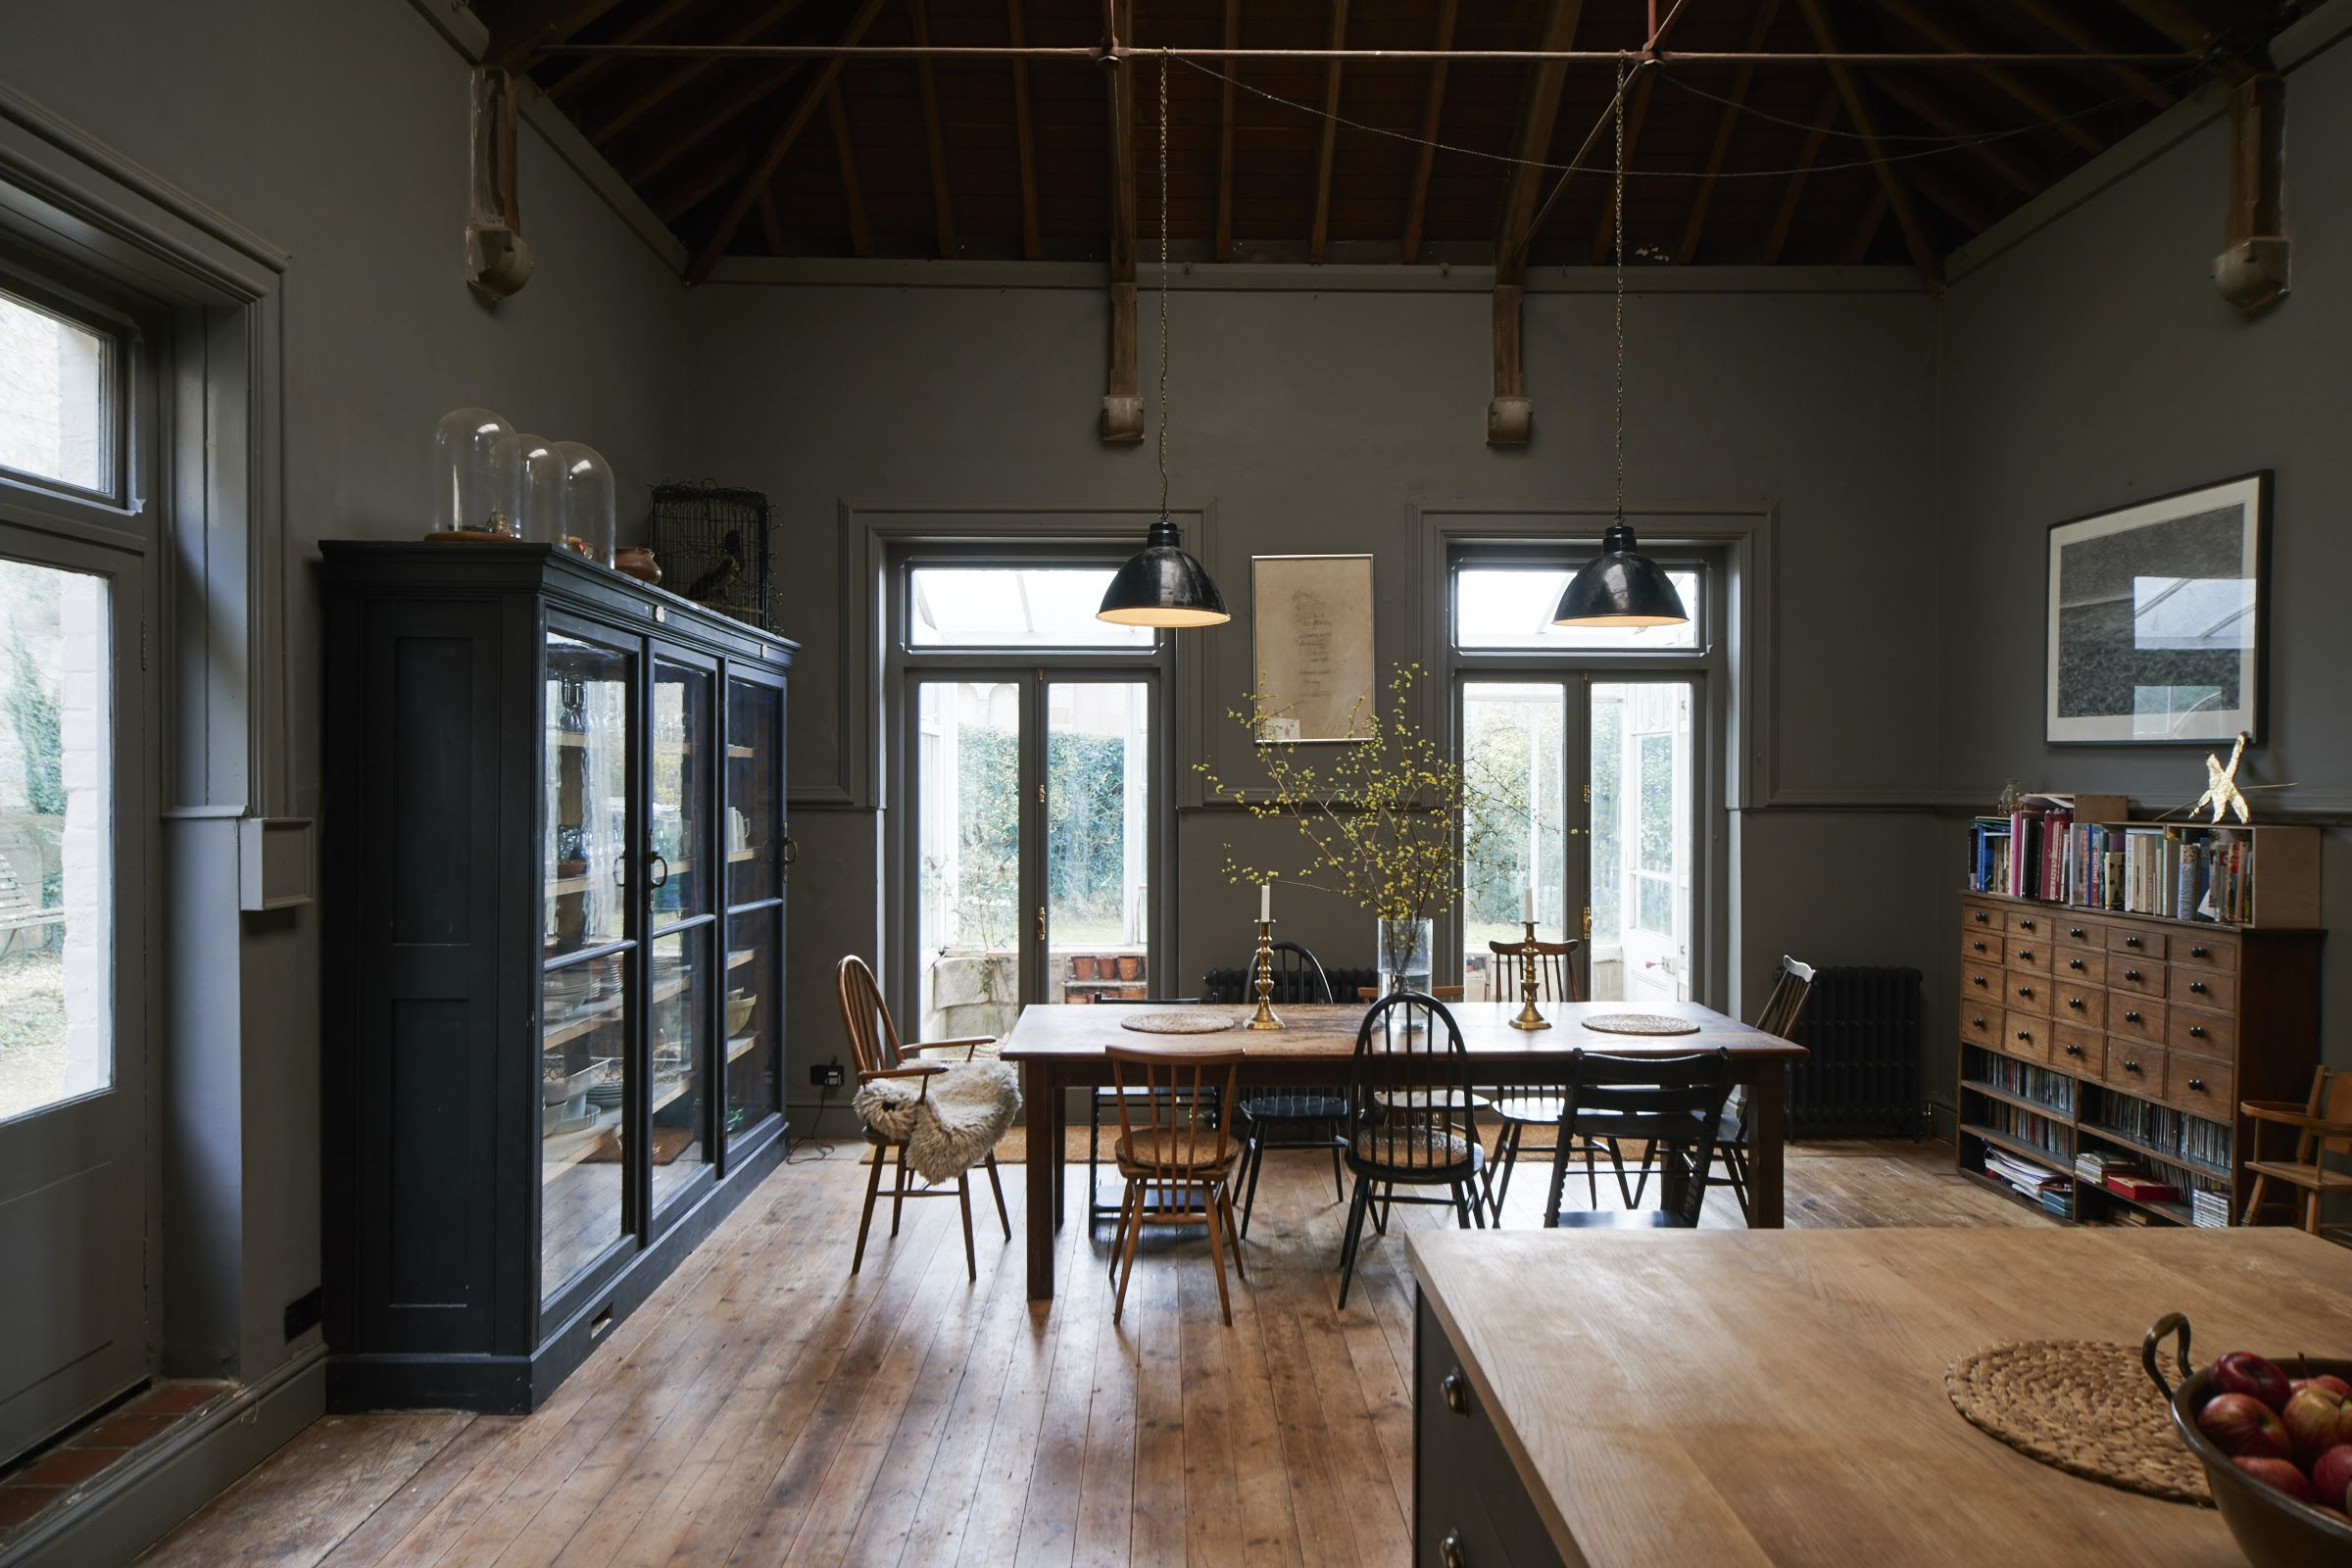 Niki turner stroud remodelista kitchen dining walls are painted in farrow s moles breath